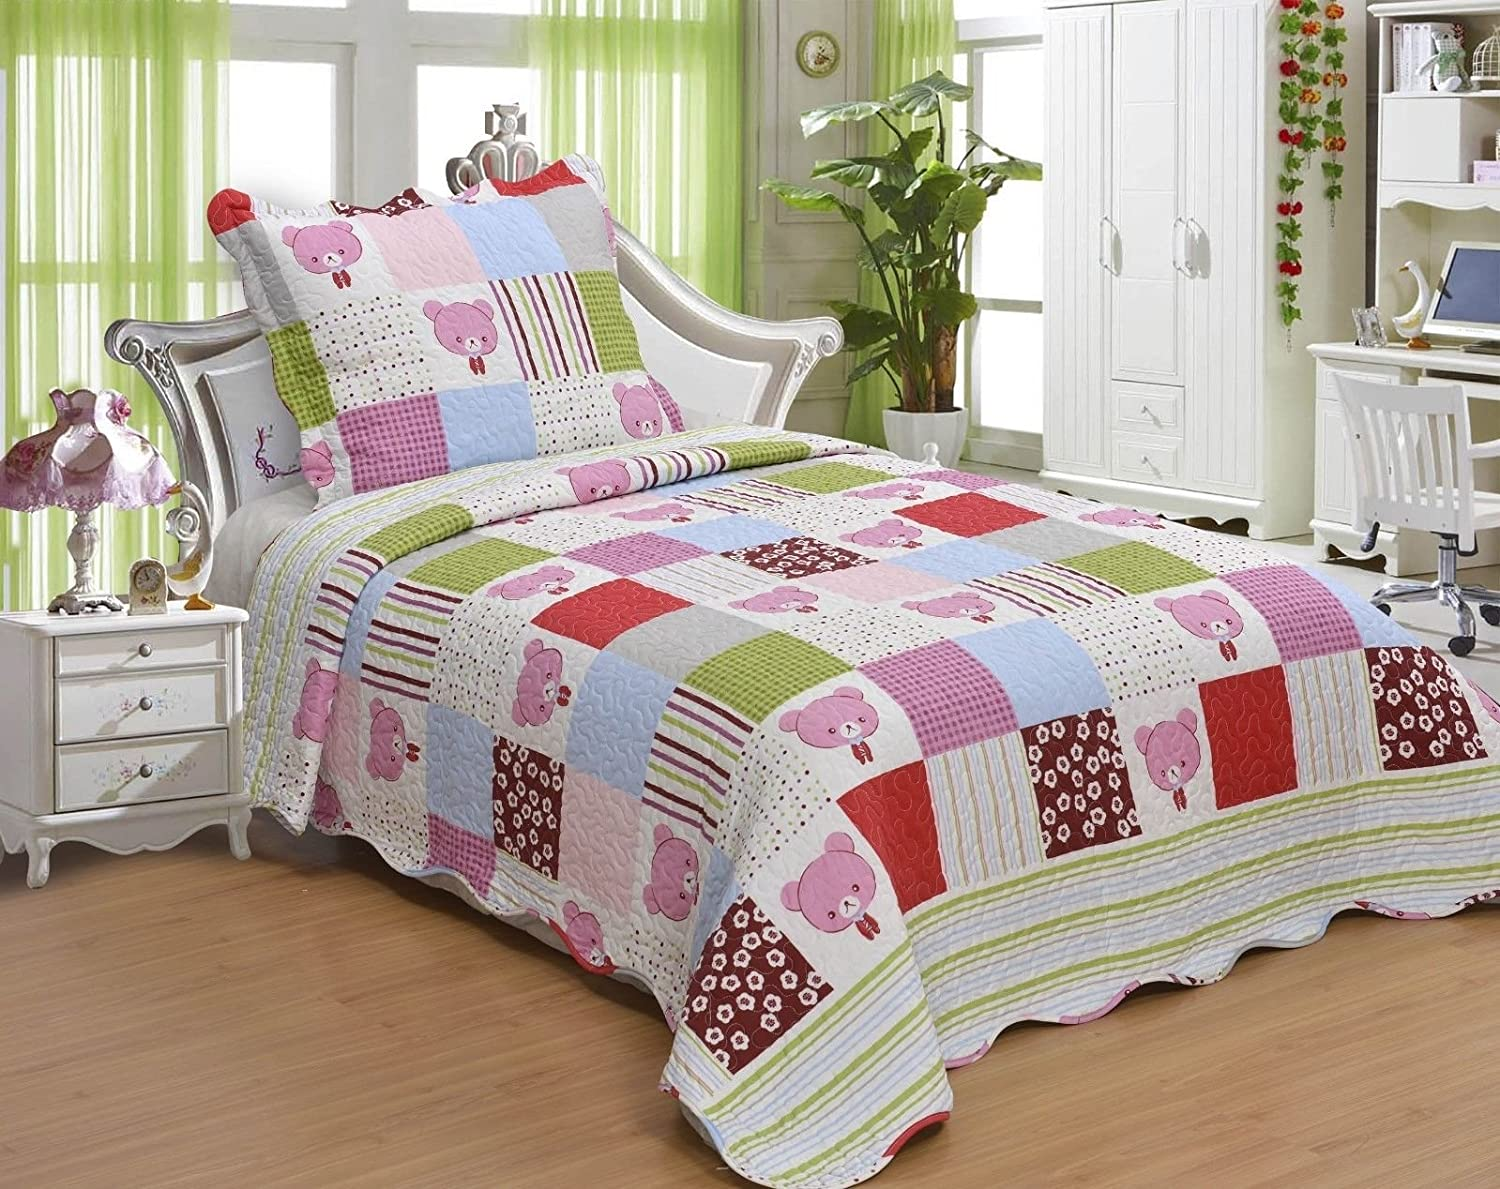 Girl's Pink Polka Dot Shabby Chic Cartoon Bear, Children's Patchwork Twin Size Quilt Set